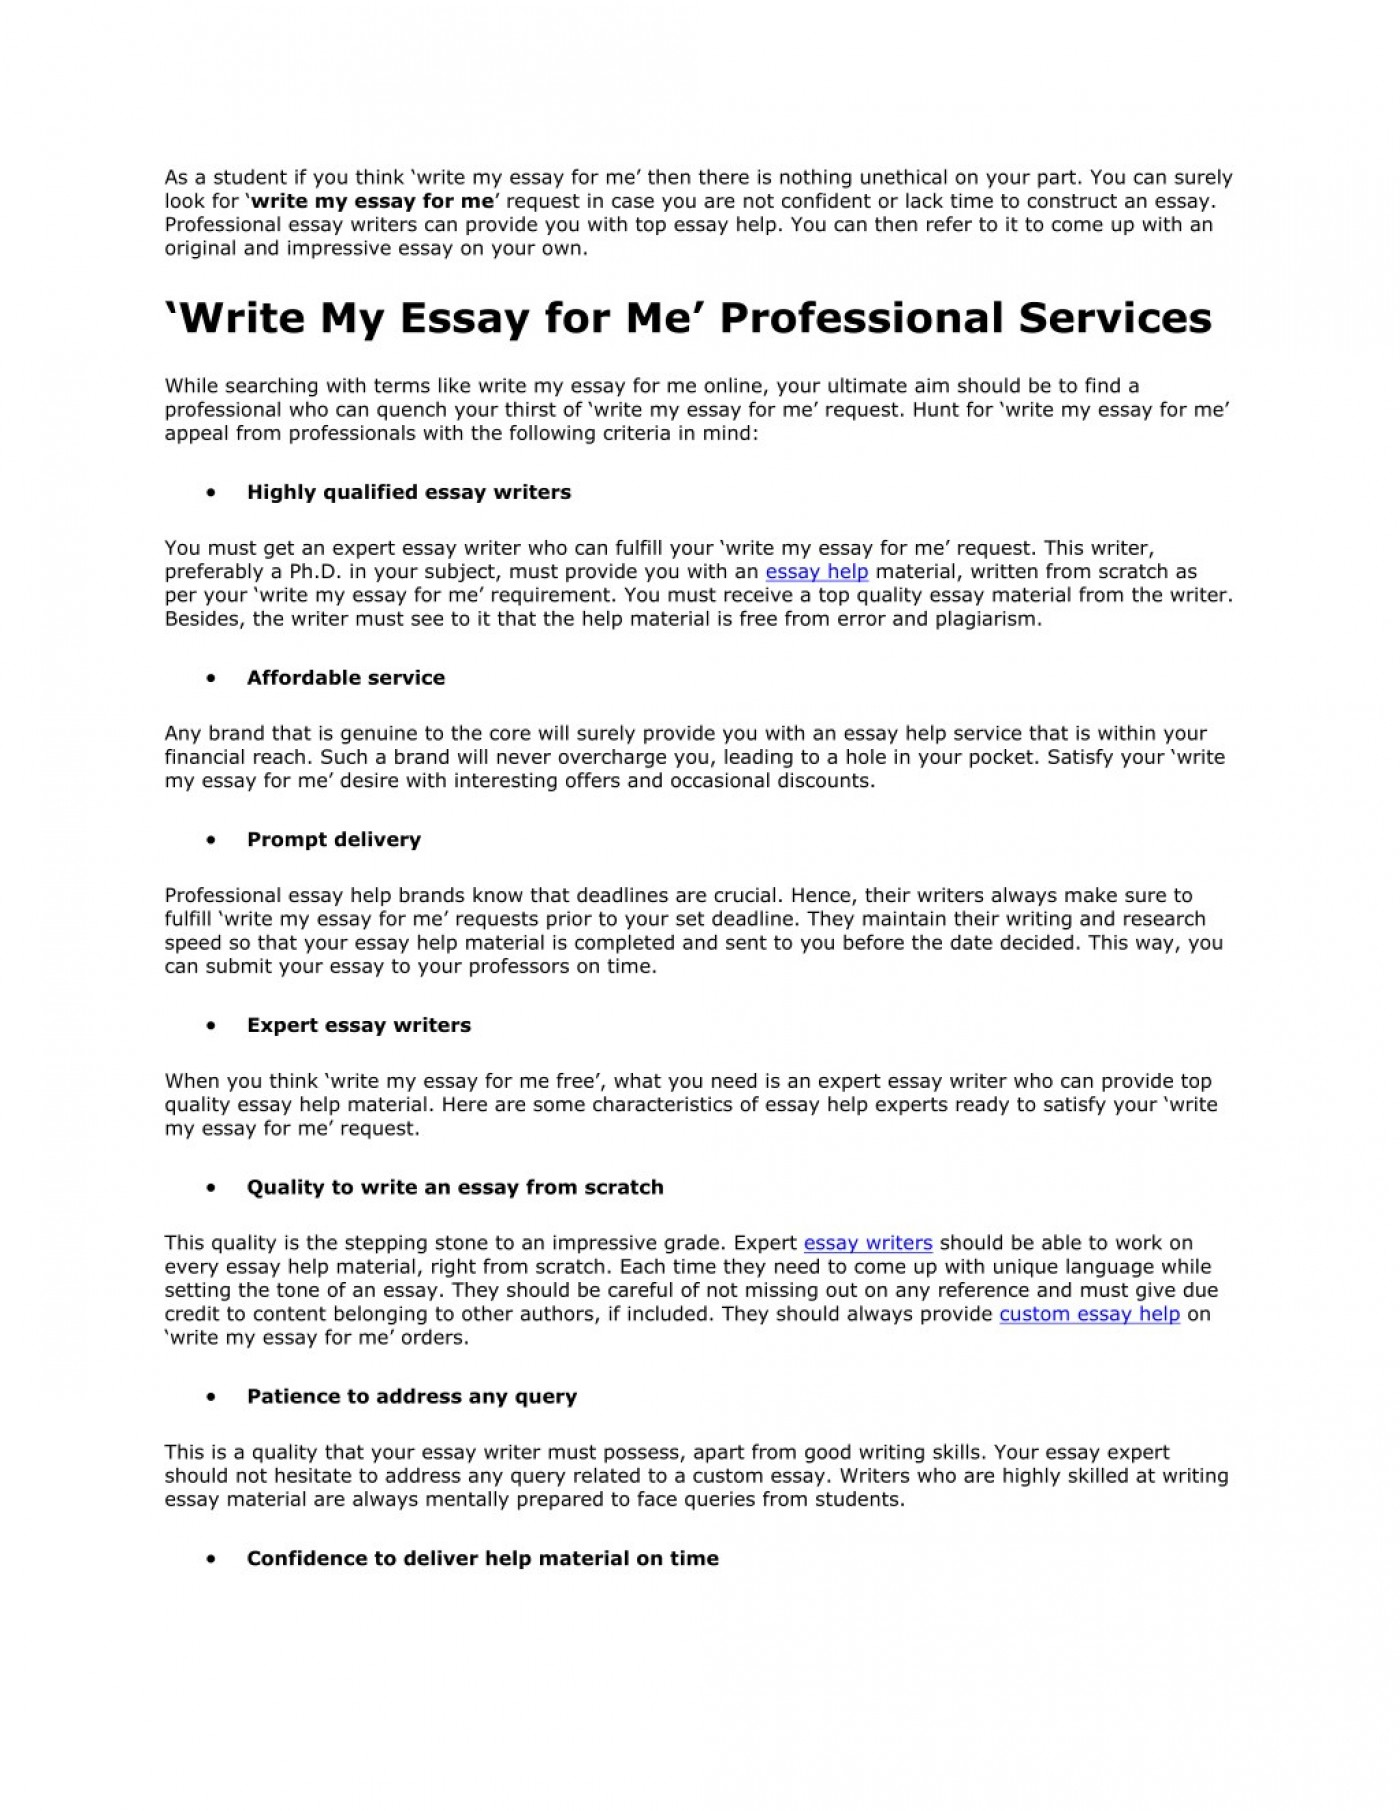 006 Essay Example Write For Me As Student If You Think My Amazing Generator Free Online 1400